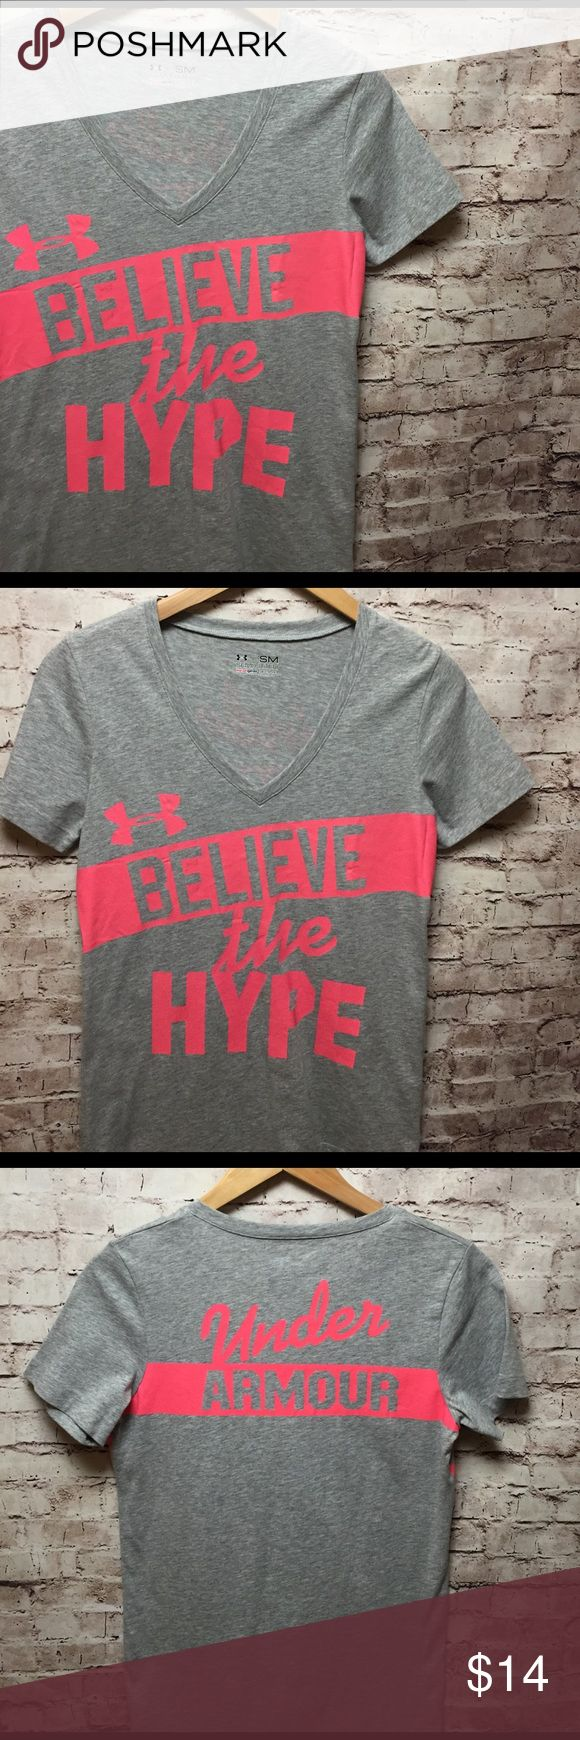 """Final Price DROP ⬇️ Under Armour Tee """"Believe the Hype"""" - Under Armour Tee ... Heat Gear ... semi-fitted ... Size Small ... Never worn! Excellent condition! Gray with Pink silk screen print on front and back. Get your workout started today! Under Armour Tops Tees - Short Sleeve"""